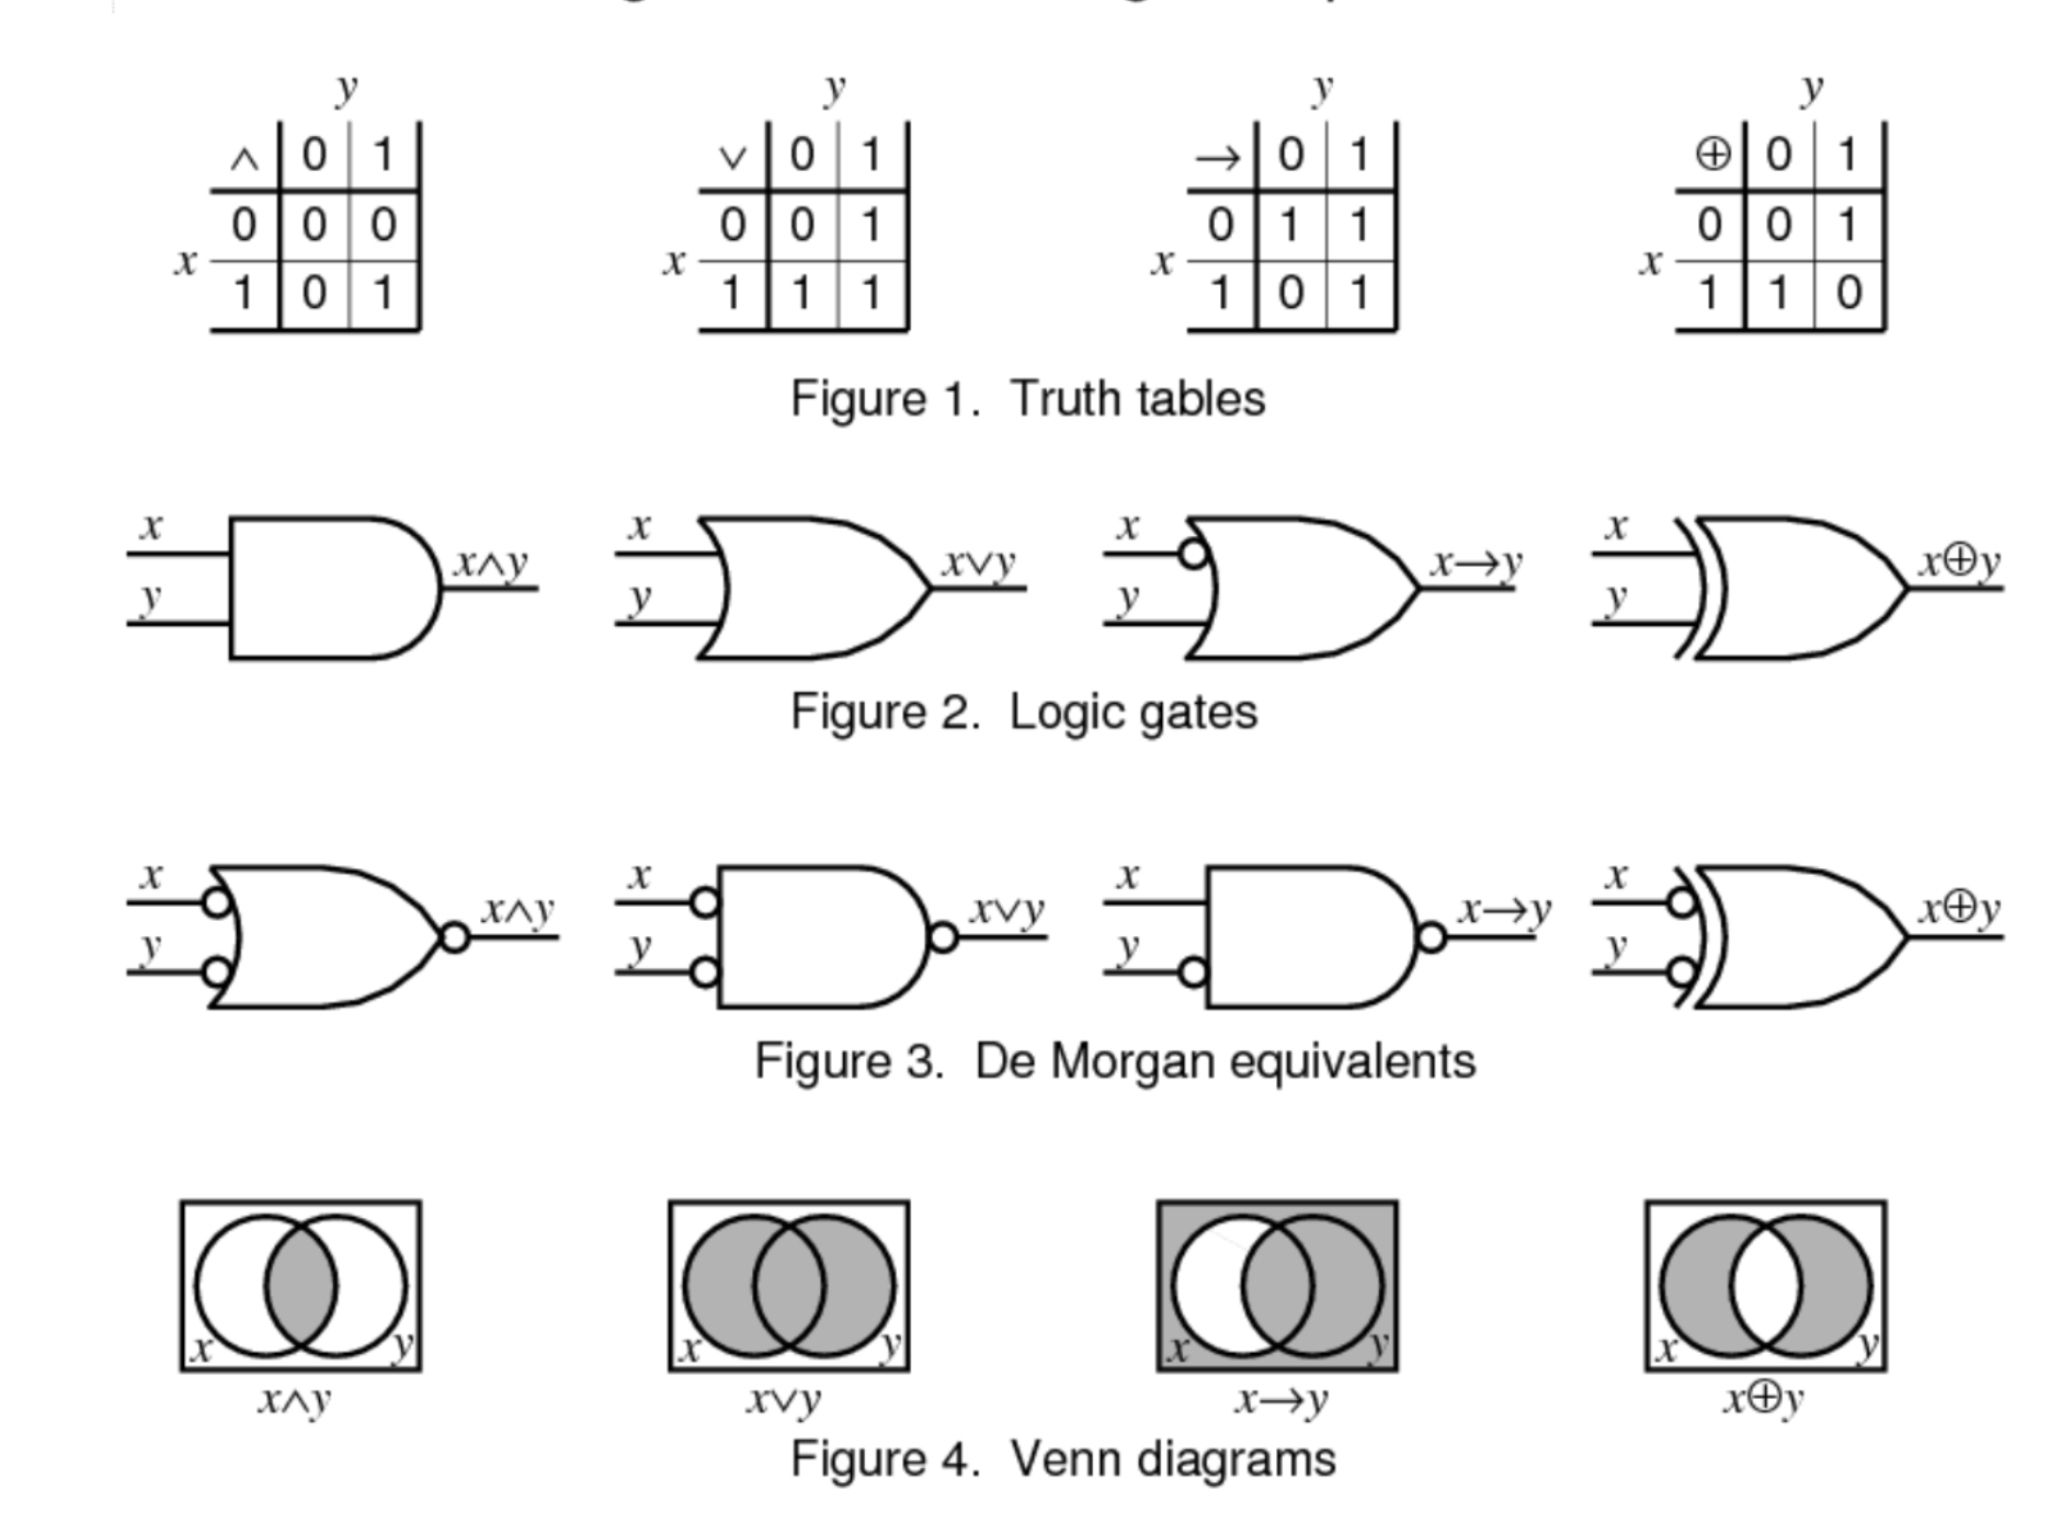 booleon logic: truth tables, logic gates, venn diagrams. | logic design,  logic, digital circuit  pinterest